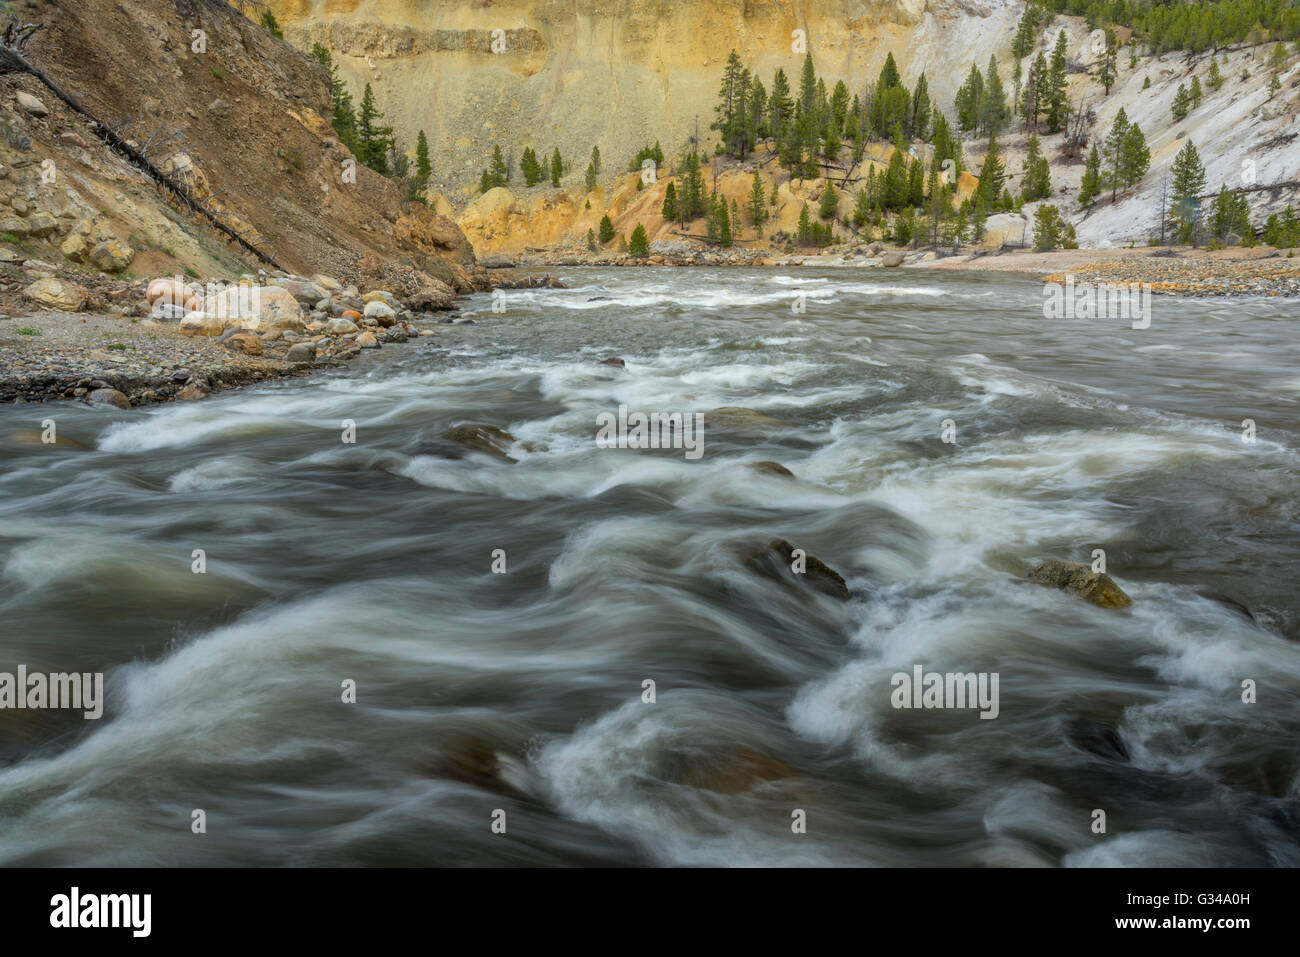 USA, Wyoming, Yellowstone, National Park, UNESCO, World Heritage, Yellowstone River canyon - Stock Image